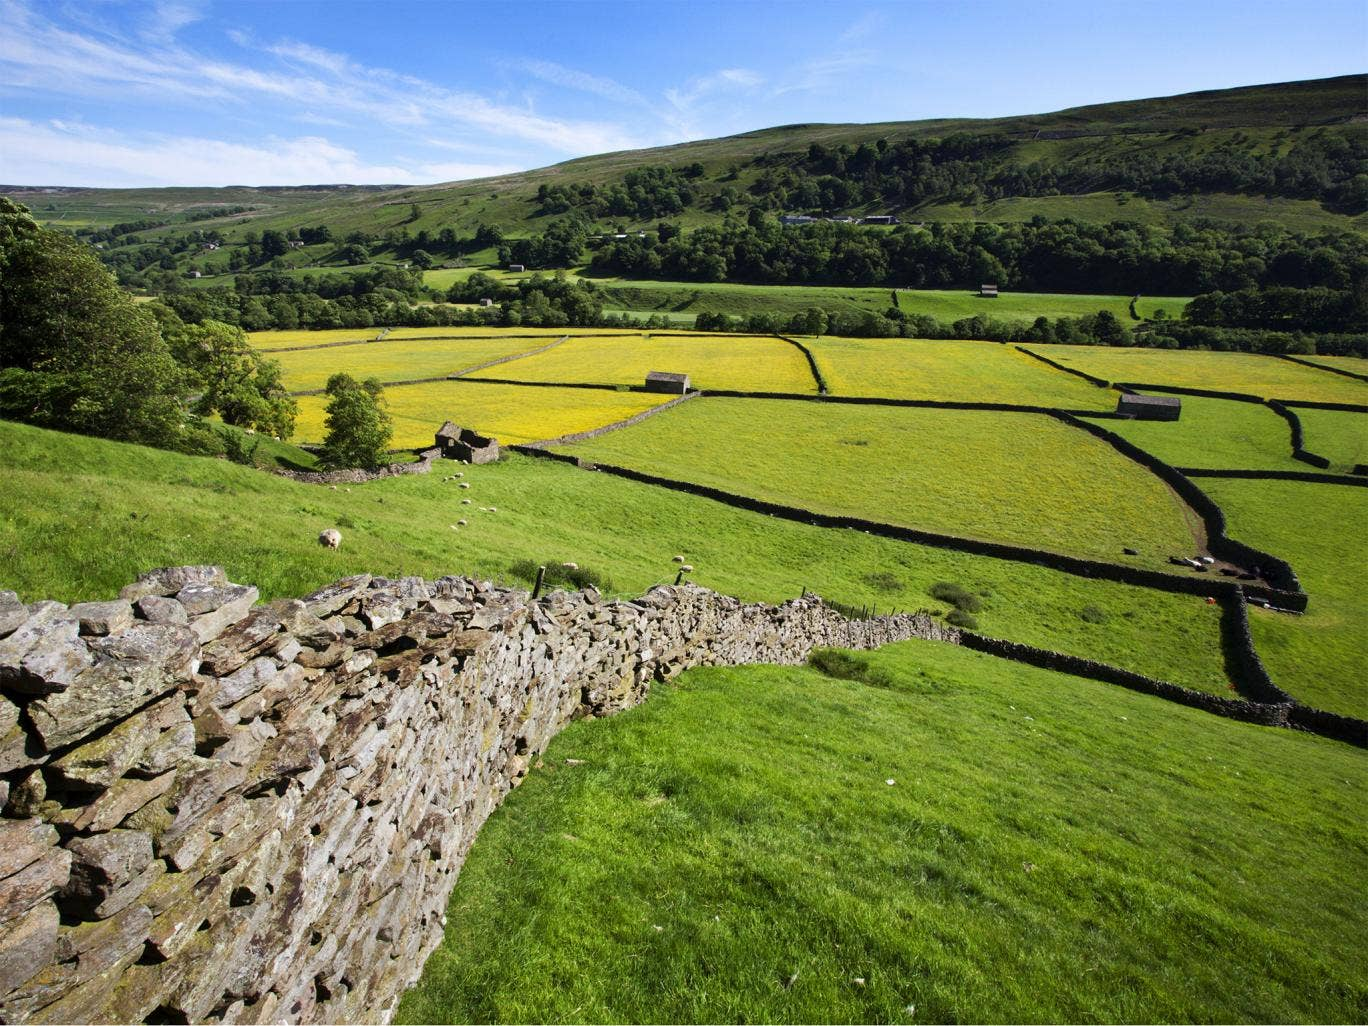 The Yorkshire Dales. National Parks cover 10 per cent of England